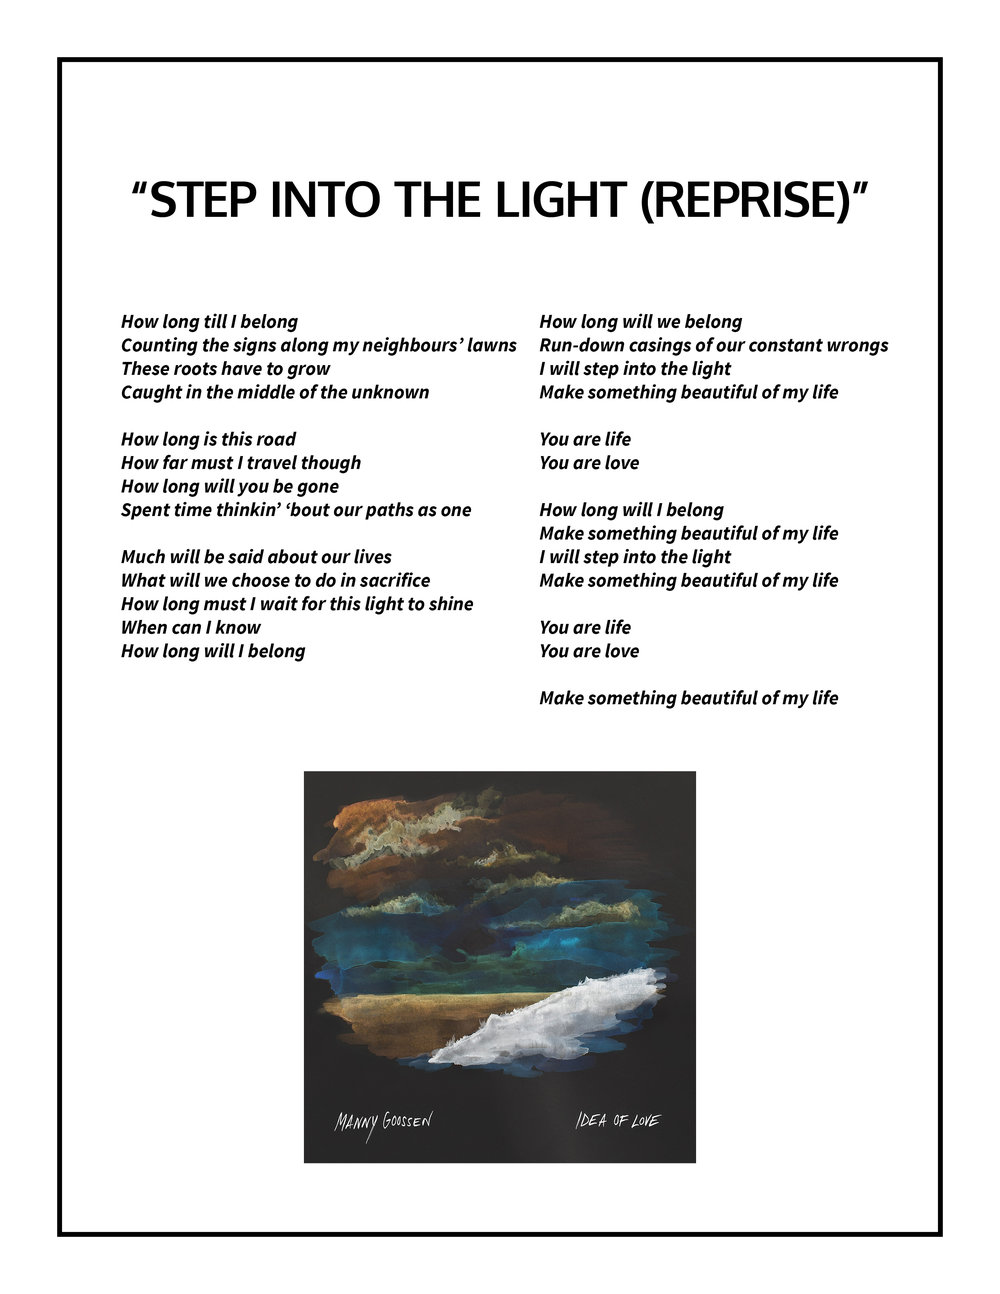 Step Into the Light (Reprise) Lyrics